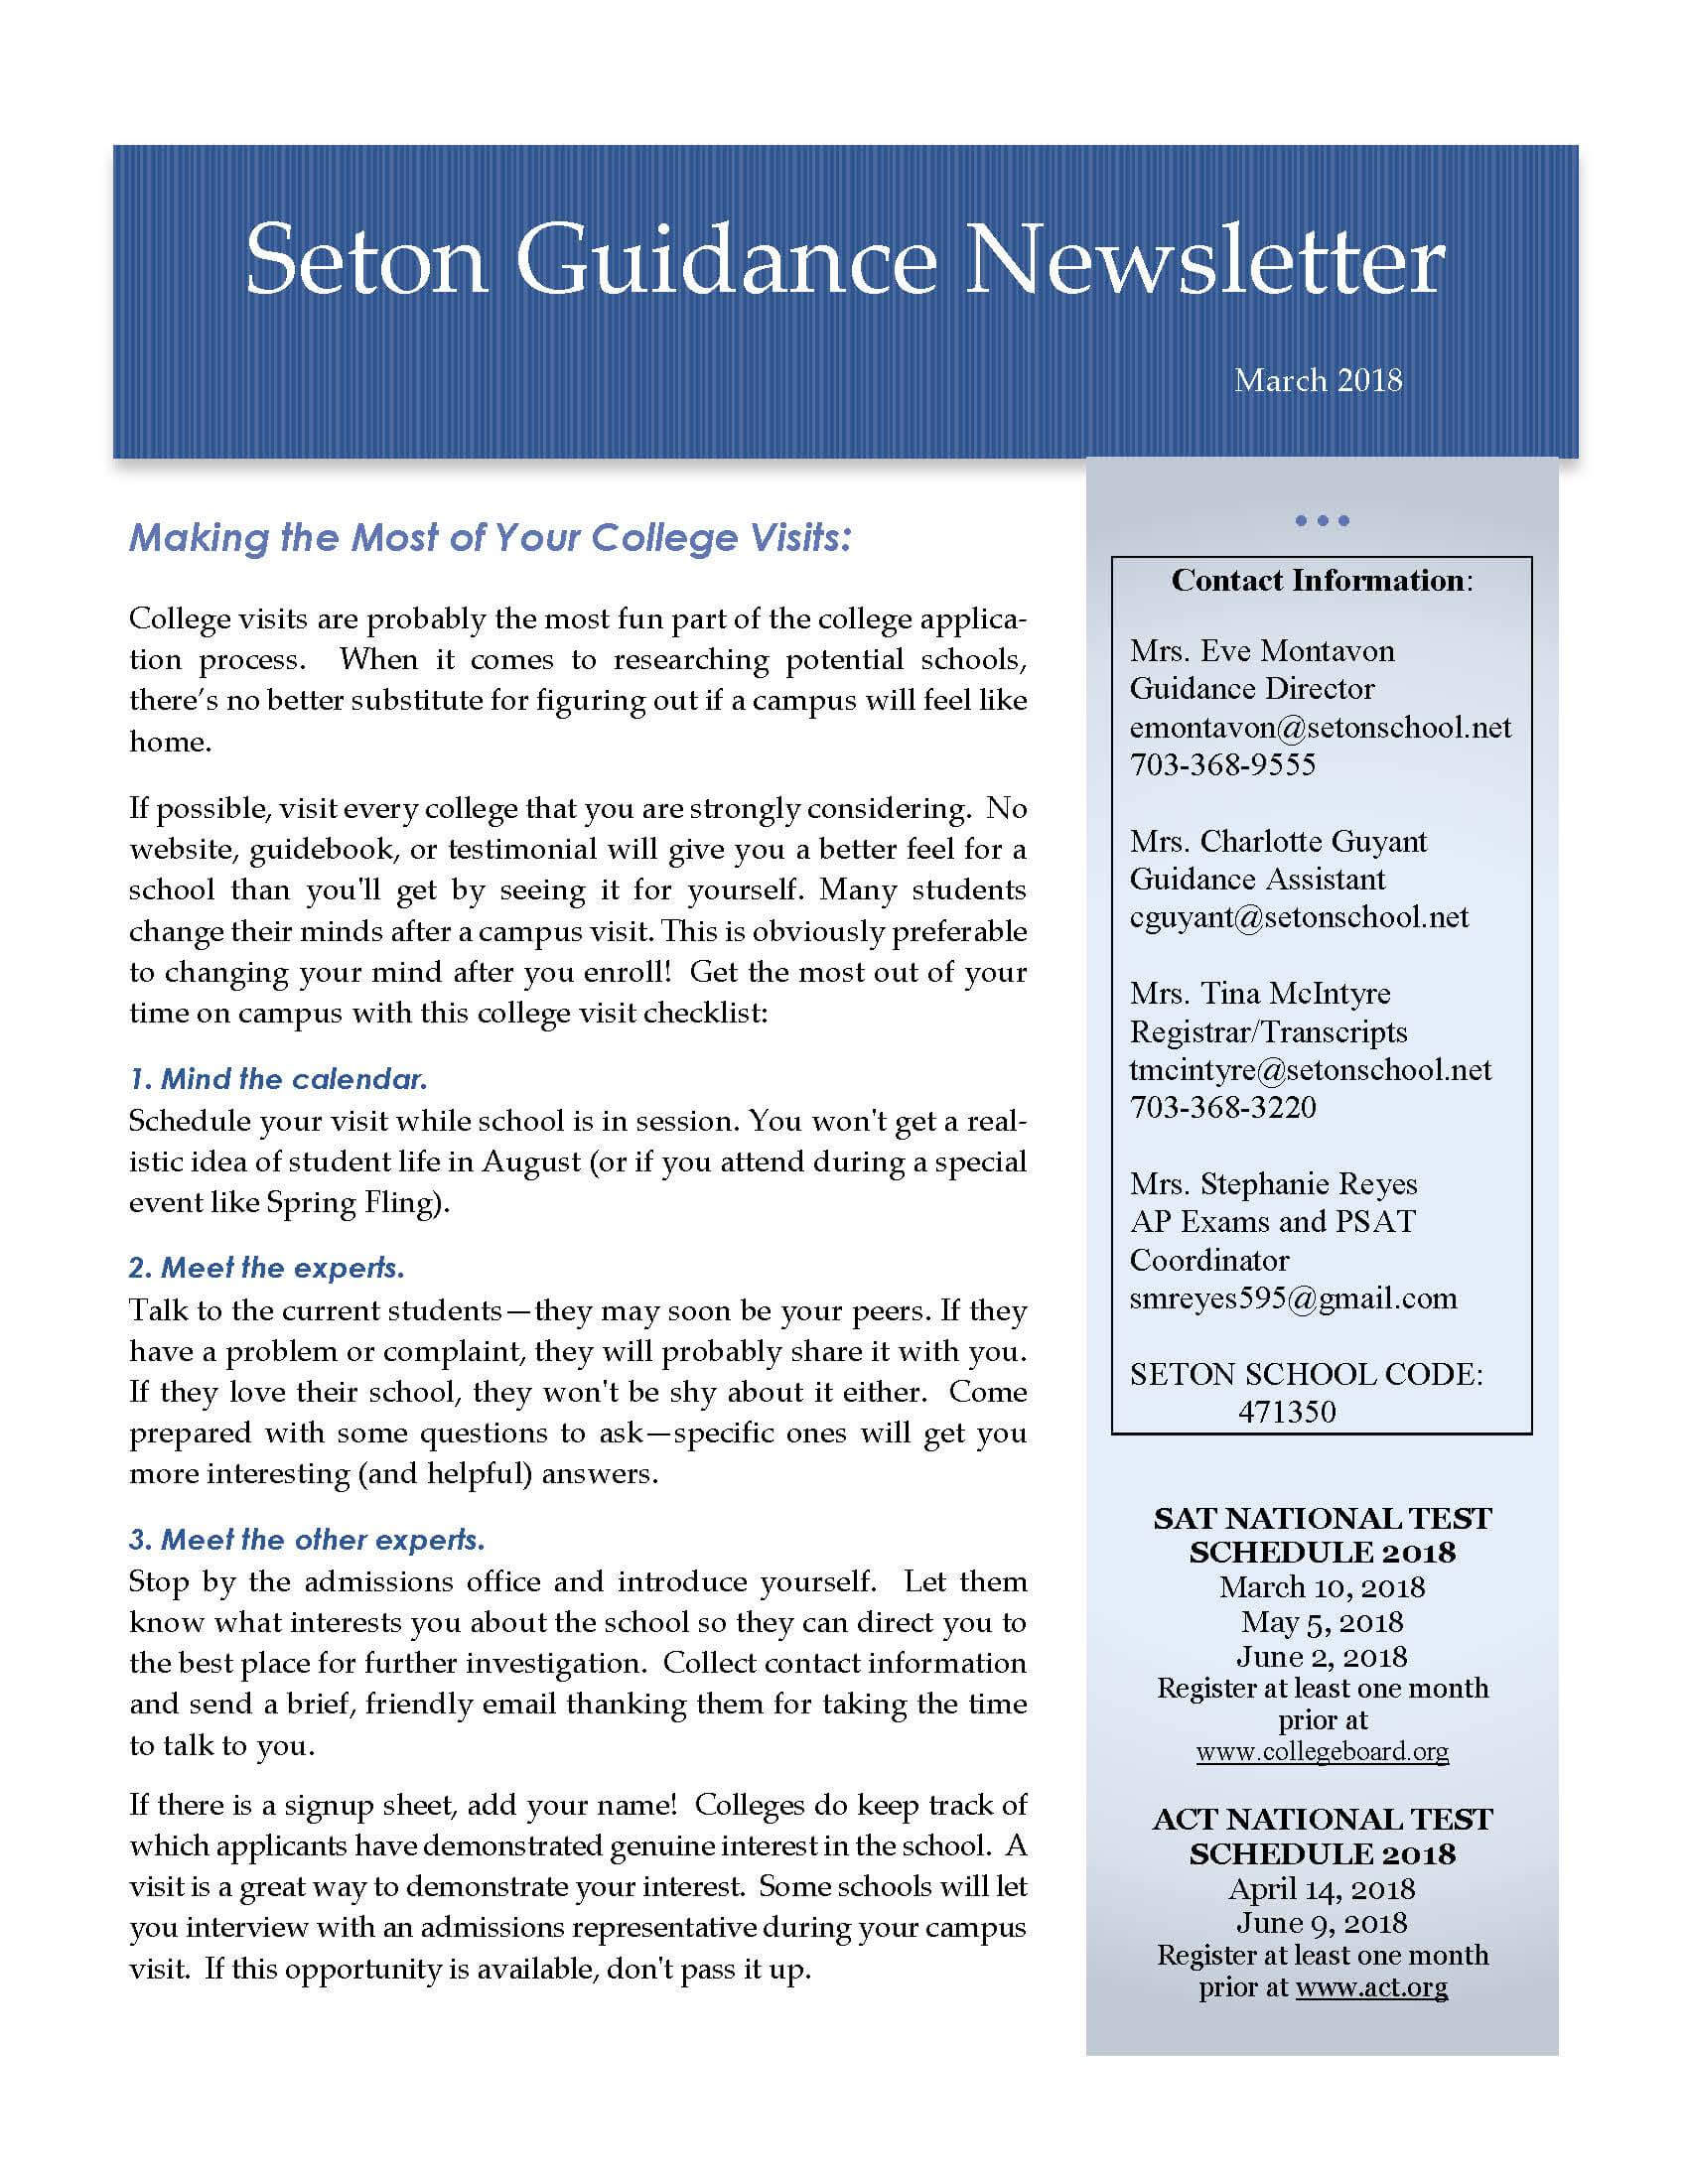 May 2017 Guidance Newsletter